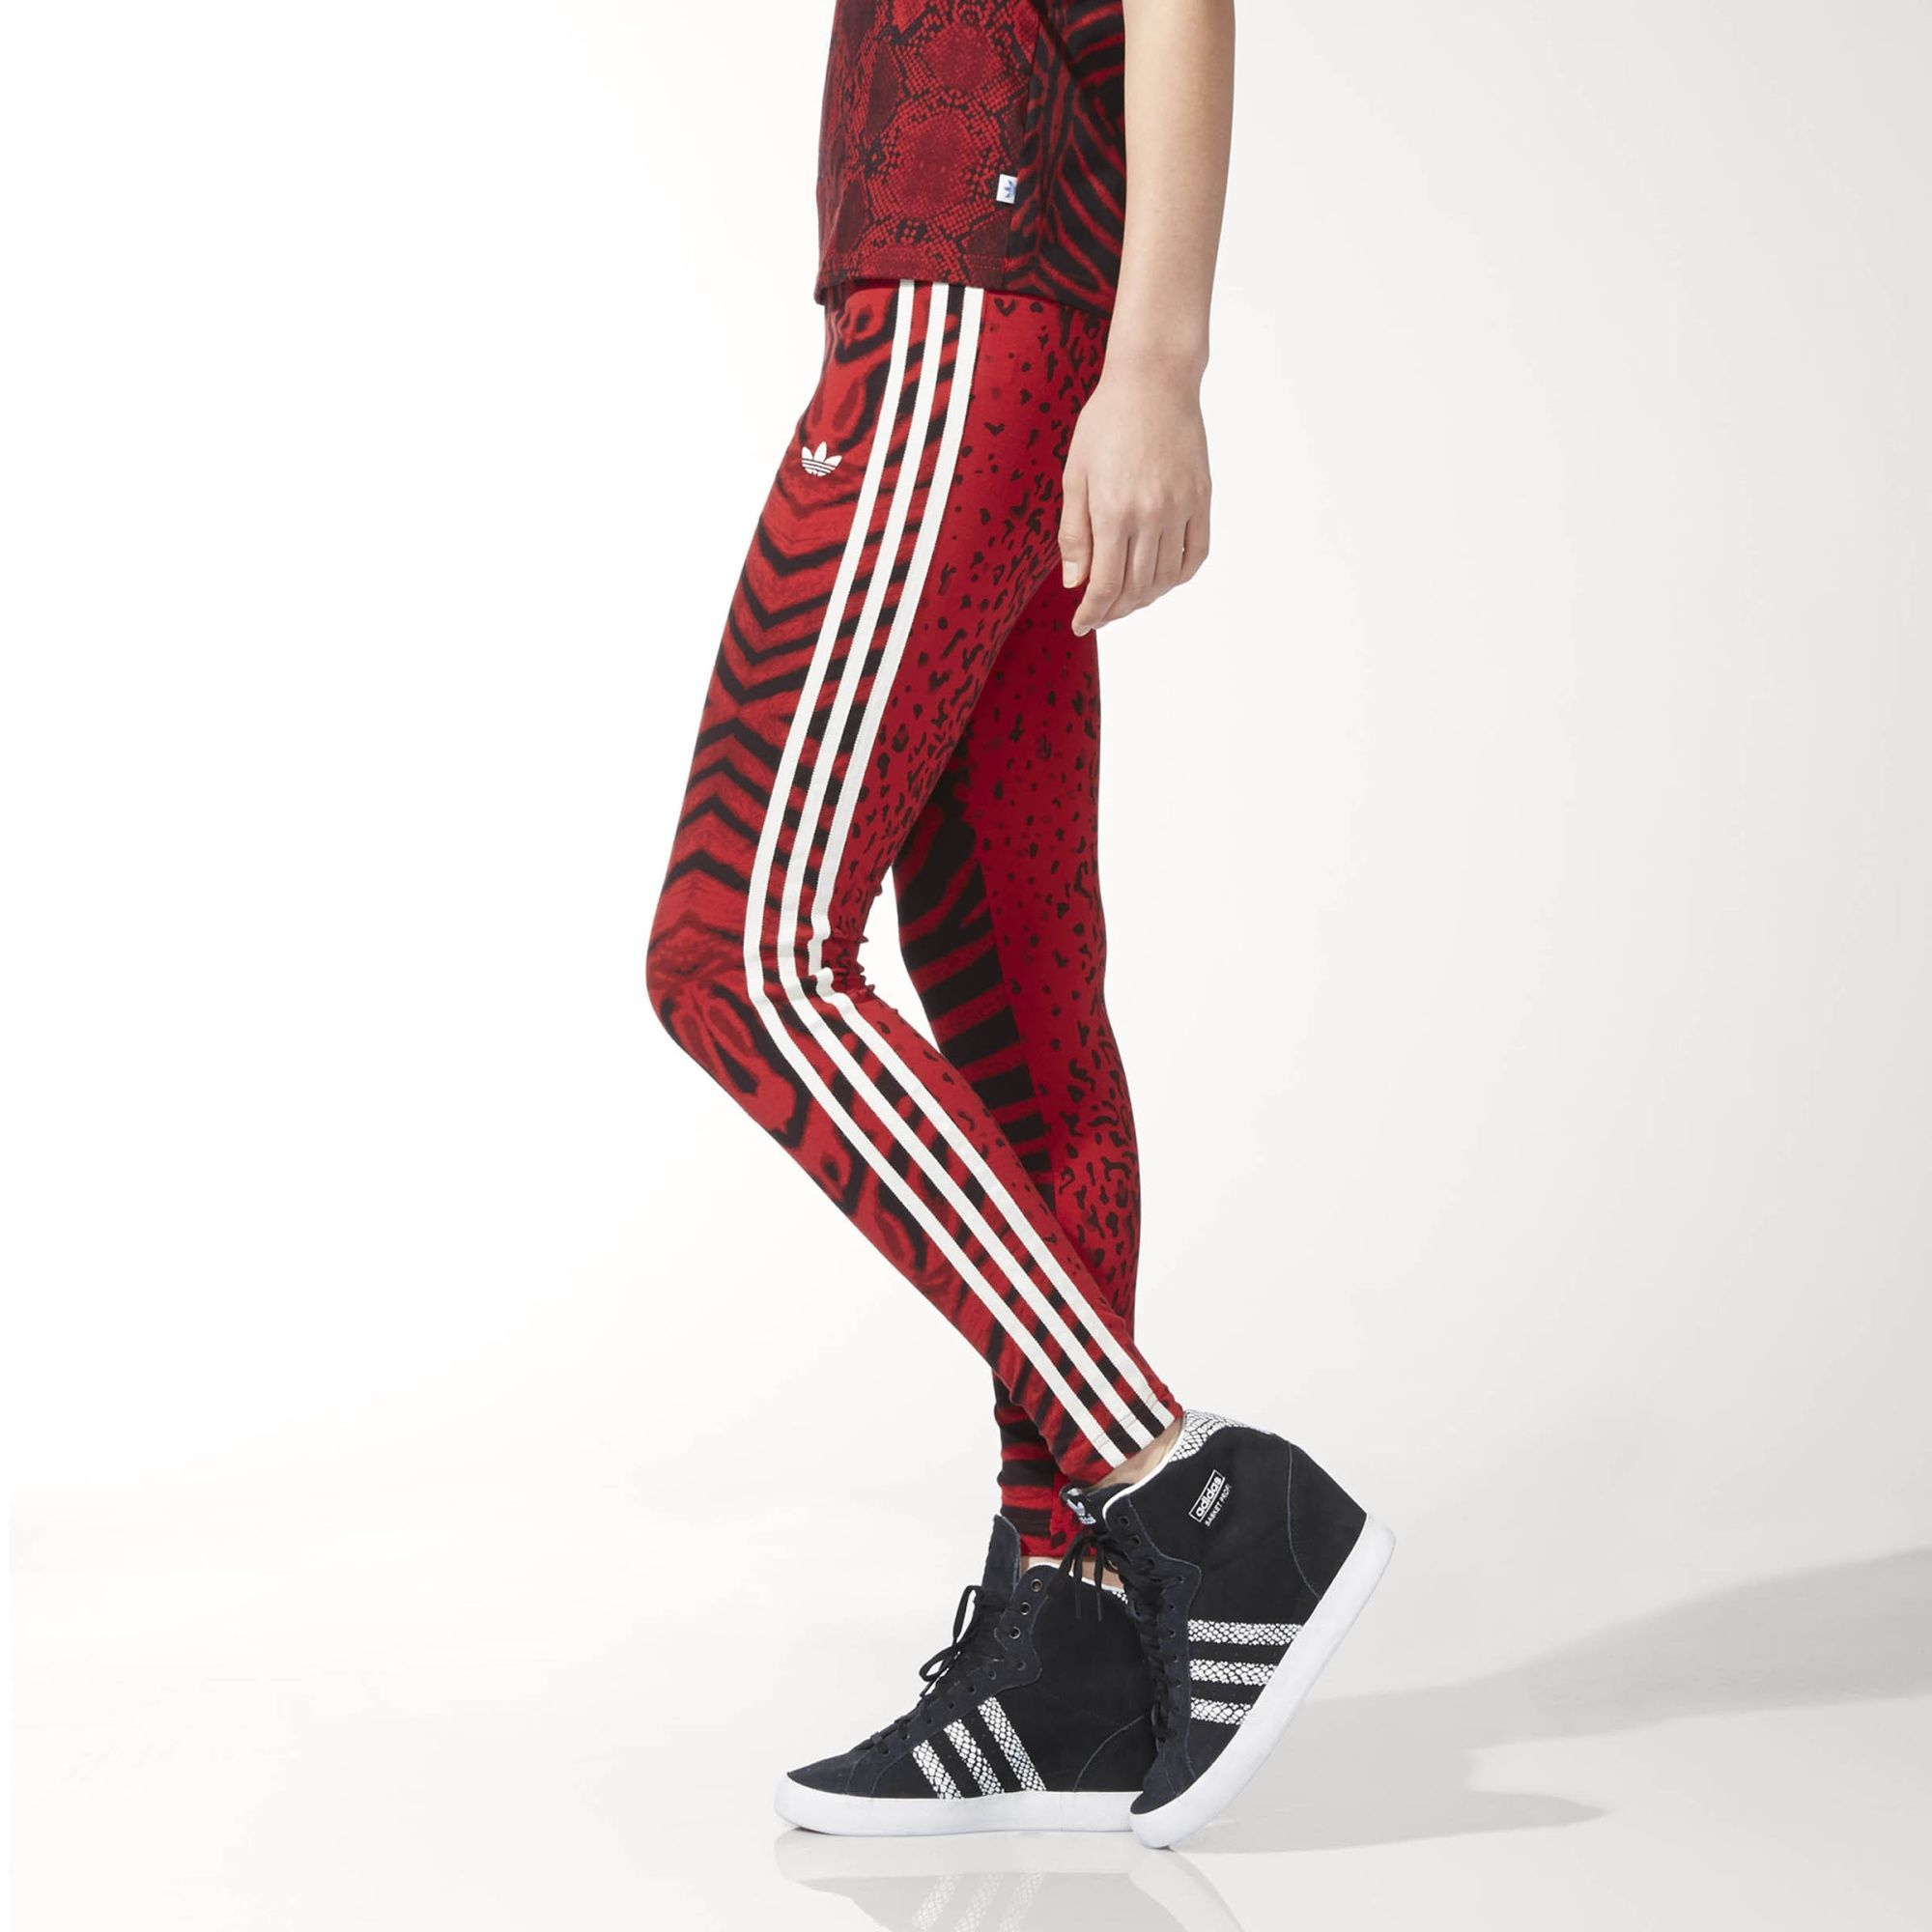 7f3ba5d4e4cab adidas Originals Womens Red Clash 3 Stripe Trefoil Tight Leggings   AC2111.  All sizes listed are UK. See sizing tab below for conversions.